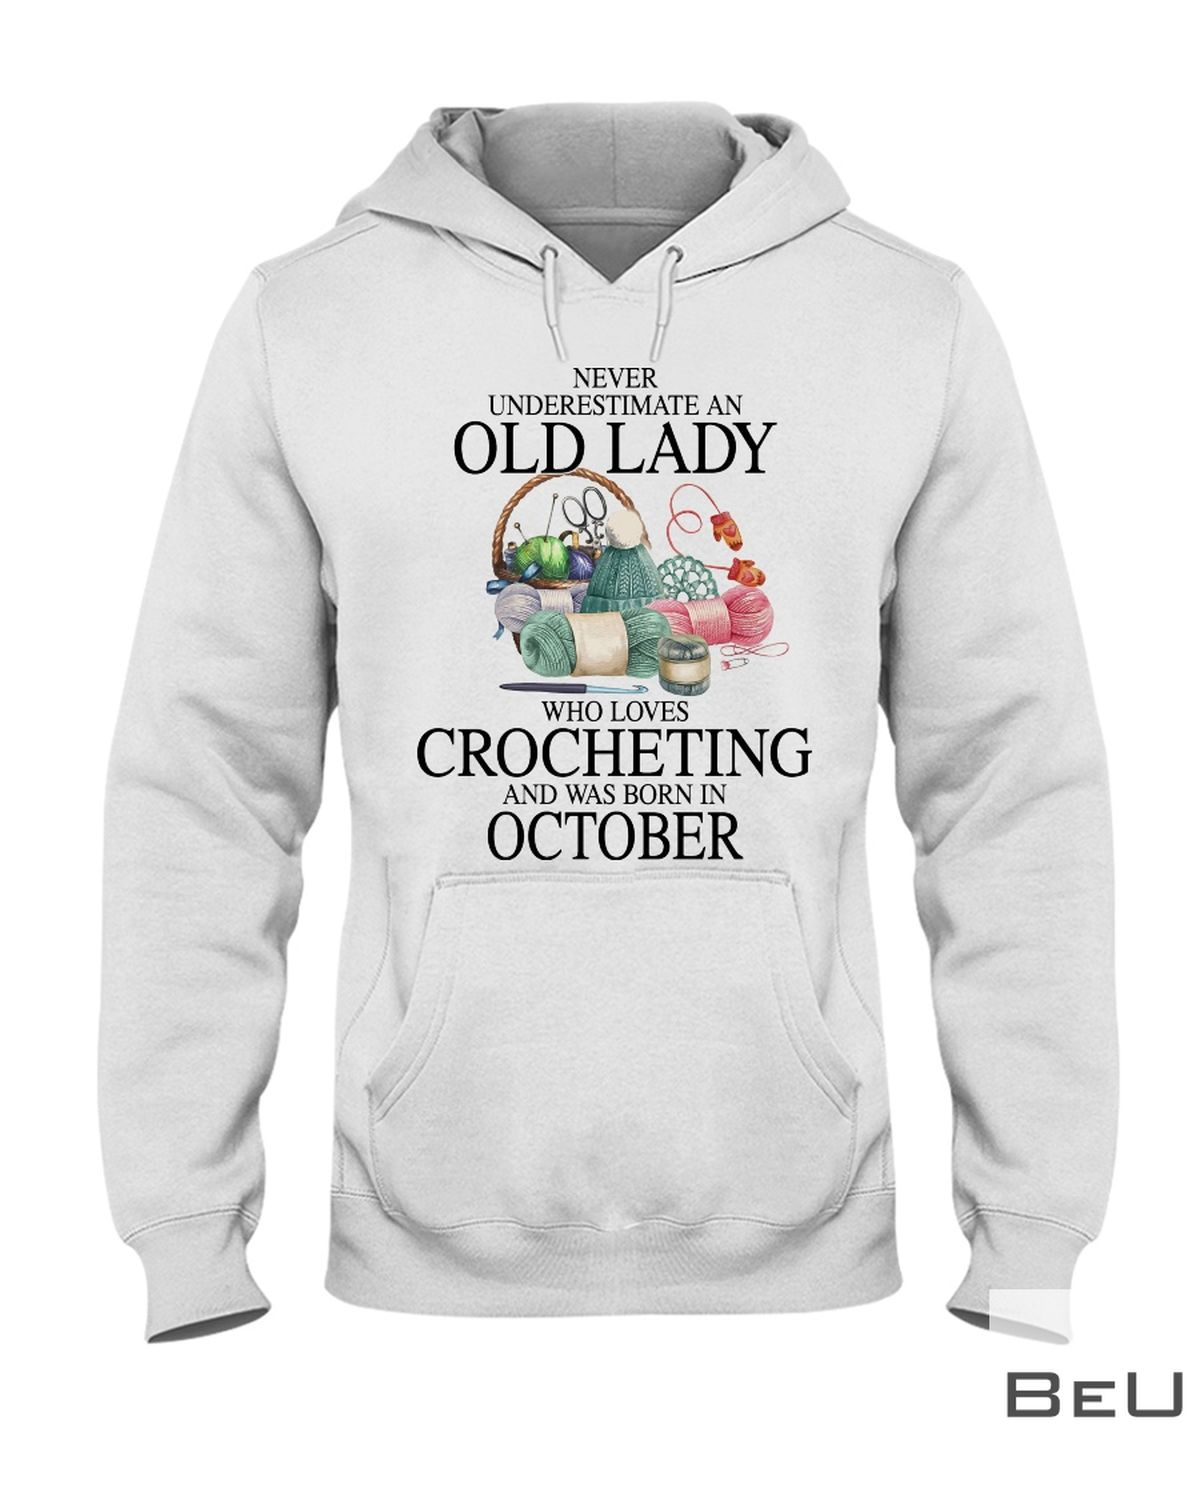 Never underestimate an old lady who loves Crocheting and was born in October shirtz